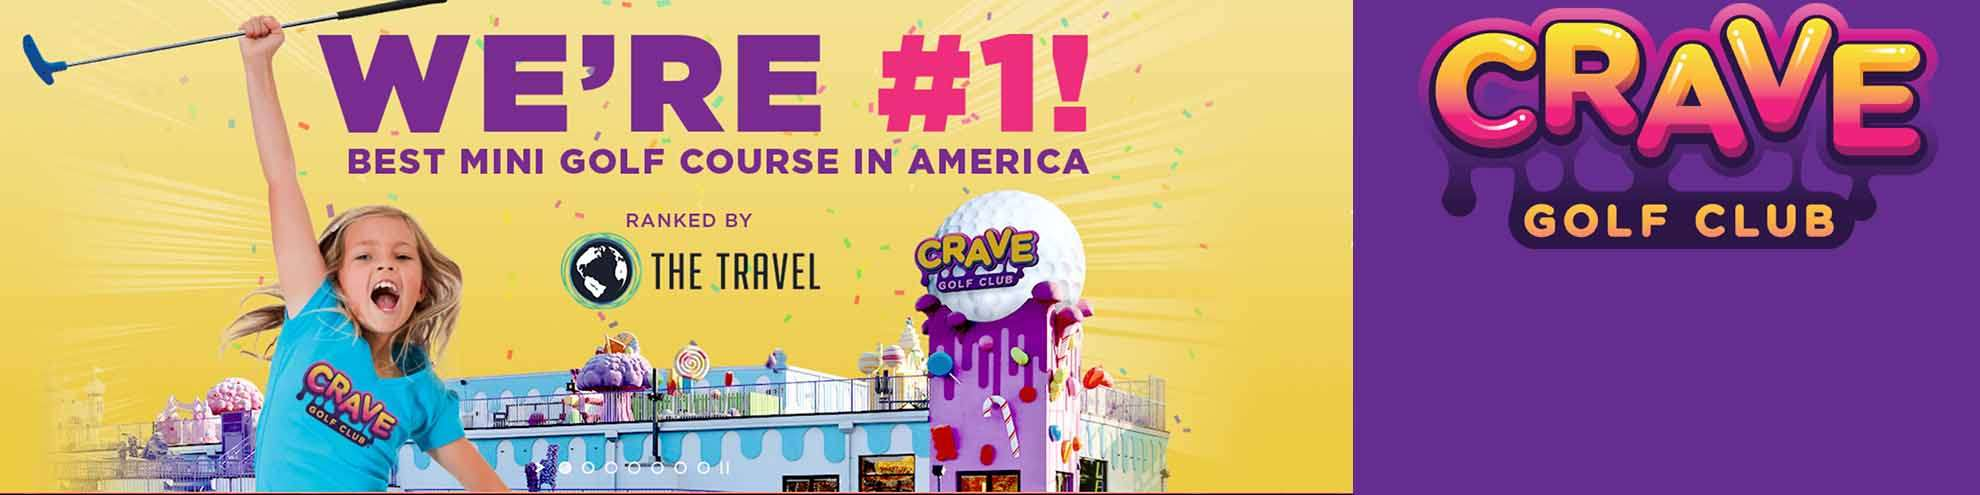 Crave Golf Club Discount Tickets